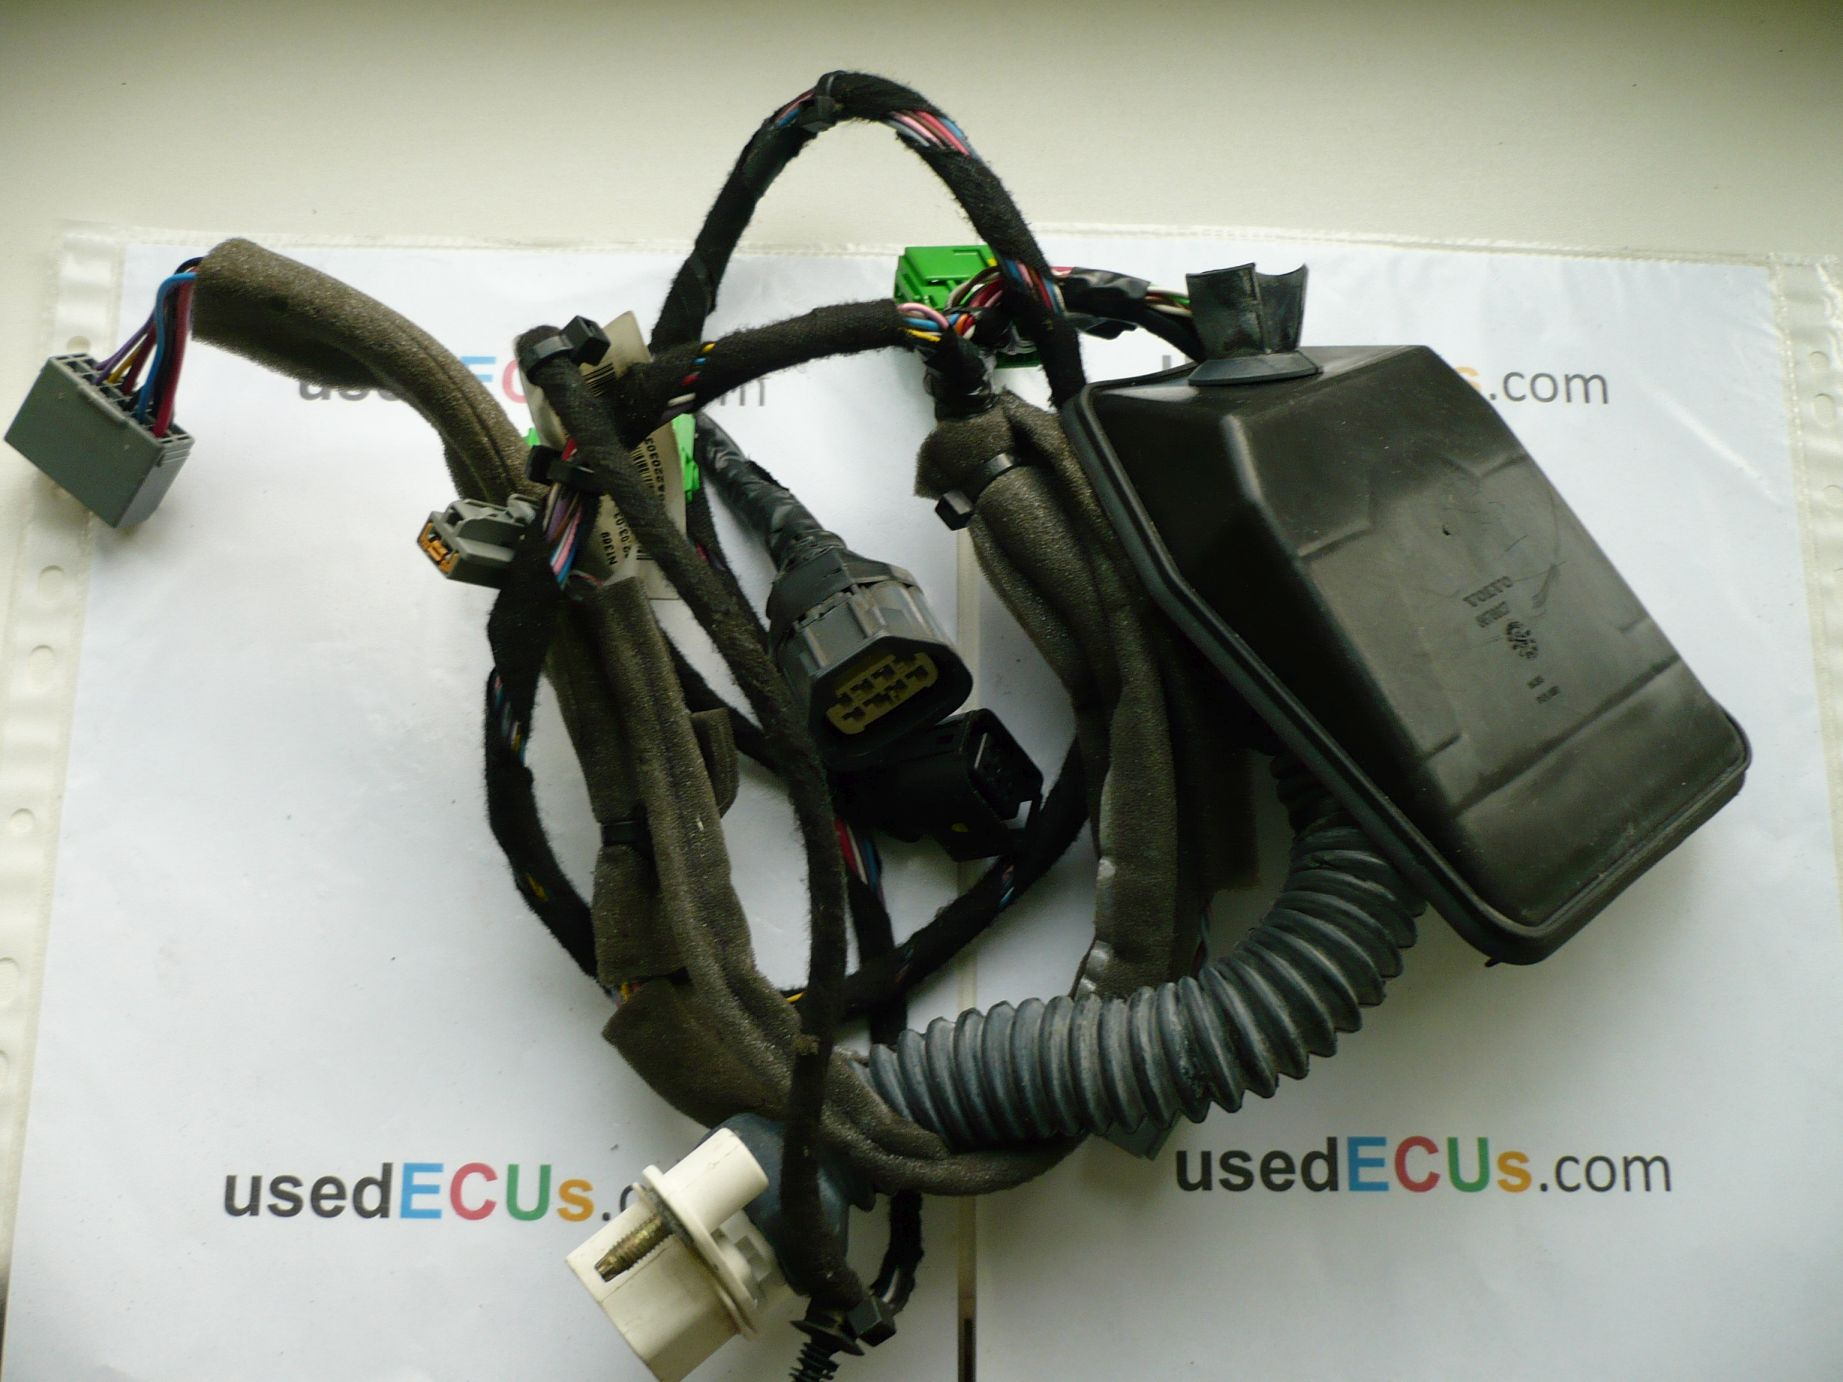 Volvo S60 2001 06 Rhd Front Left Door Wire Wiring Harness Oem Article 8690290 D 001 L